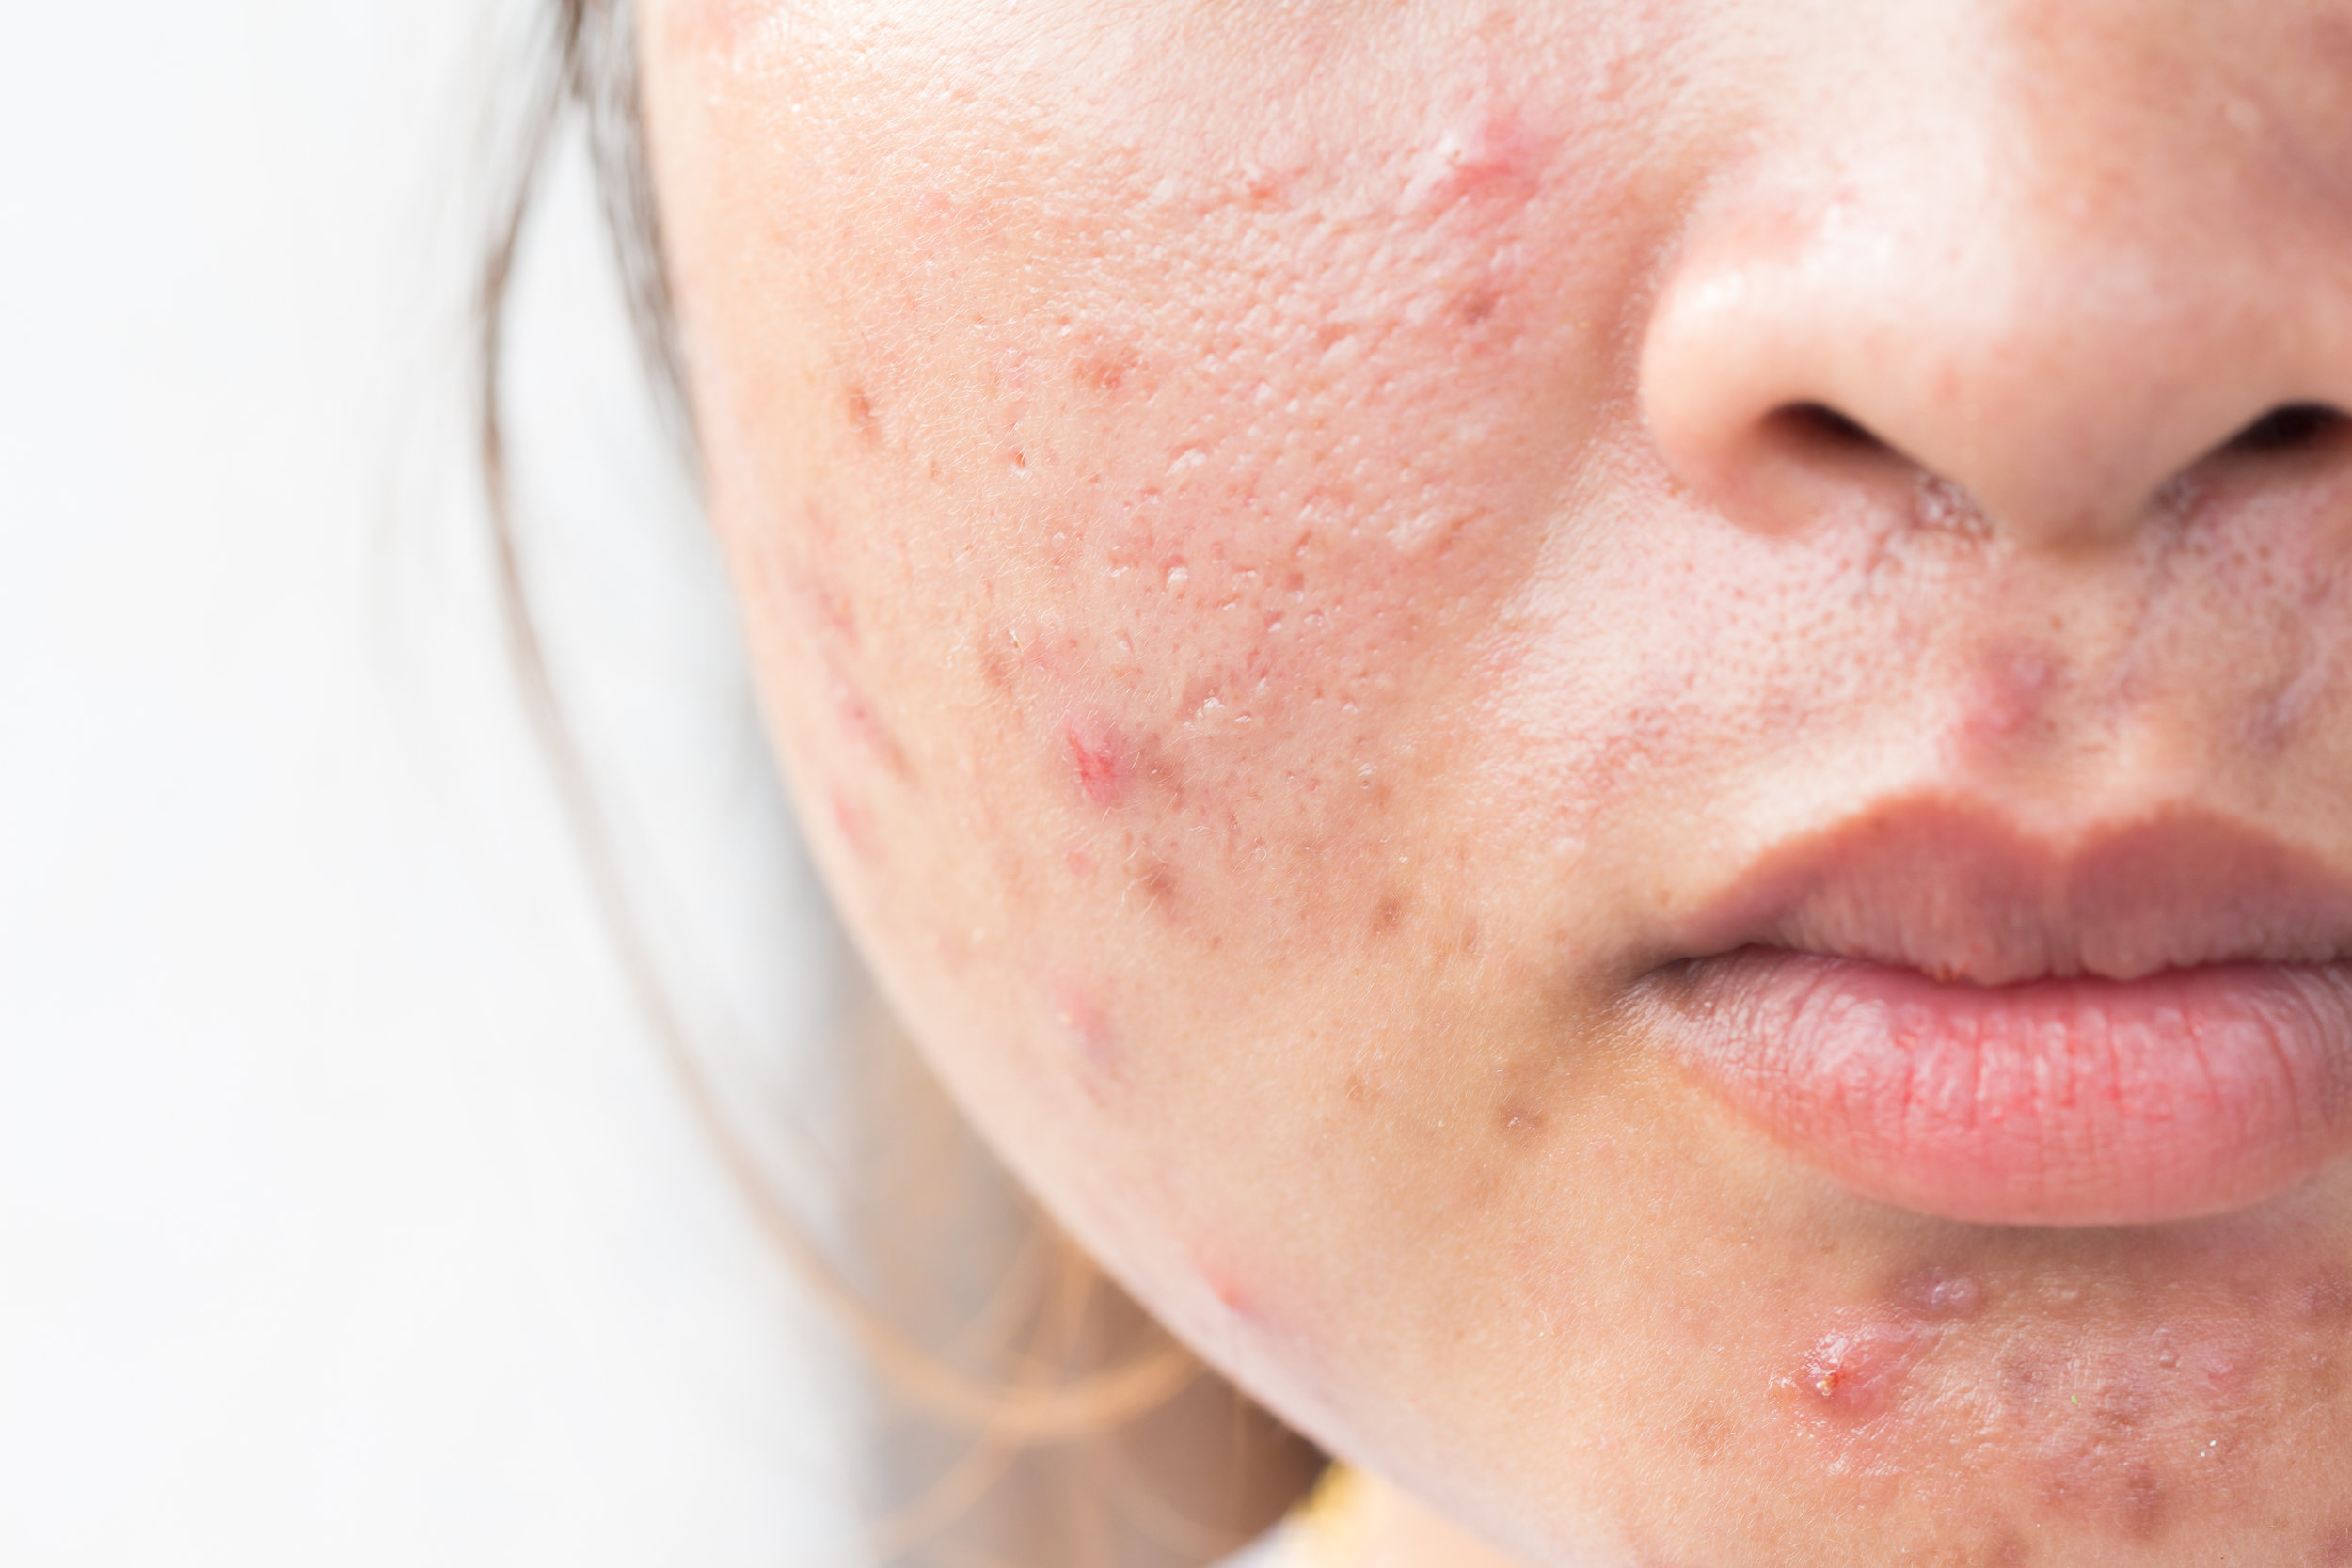 close up of a patient's face with acne